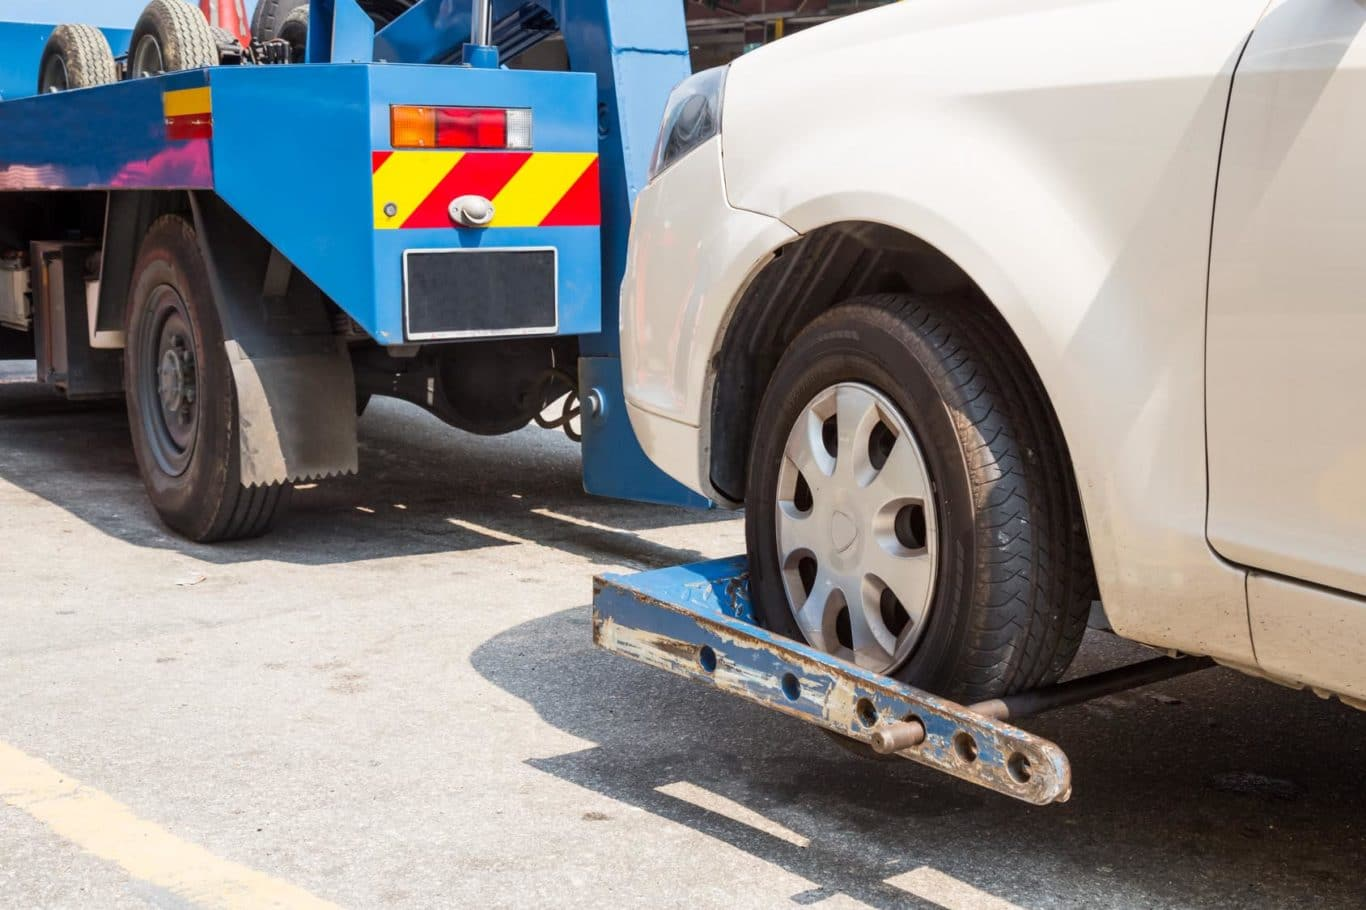 Ballybough expert Car Towing services